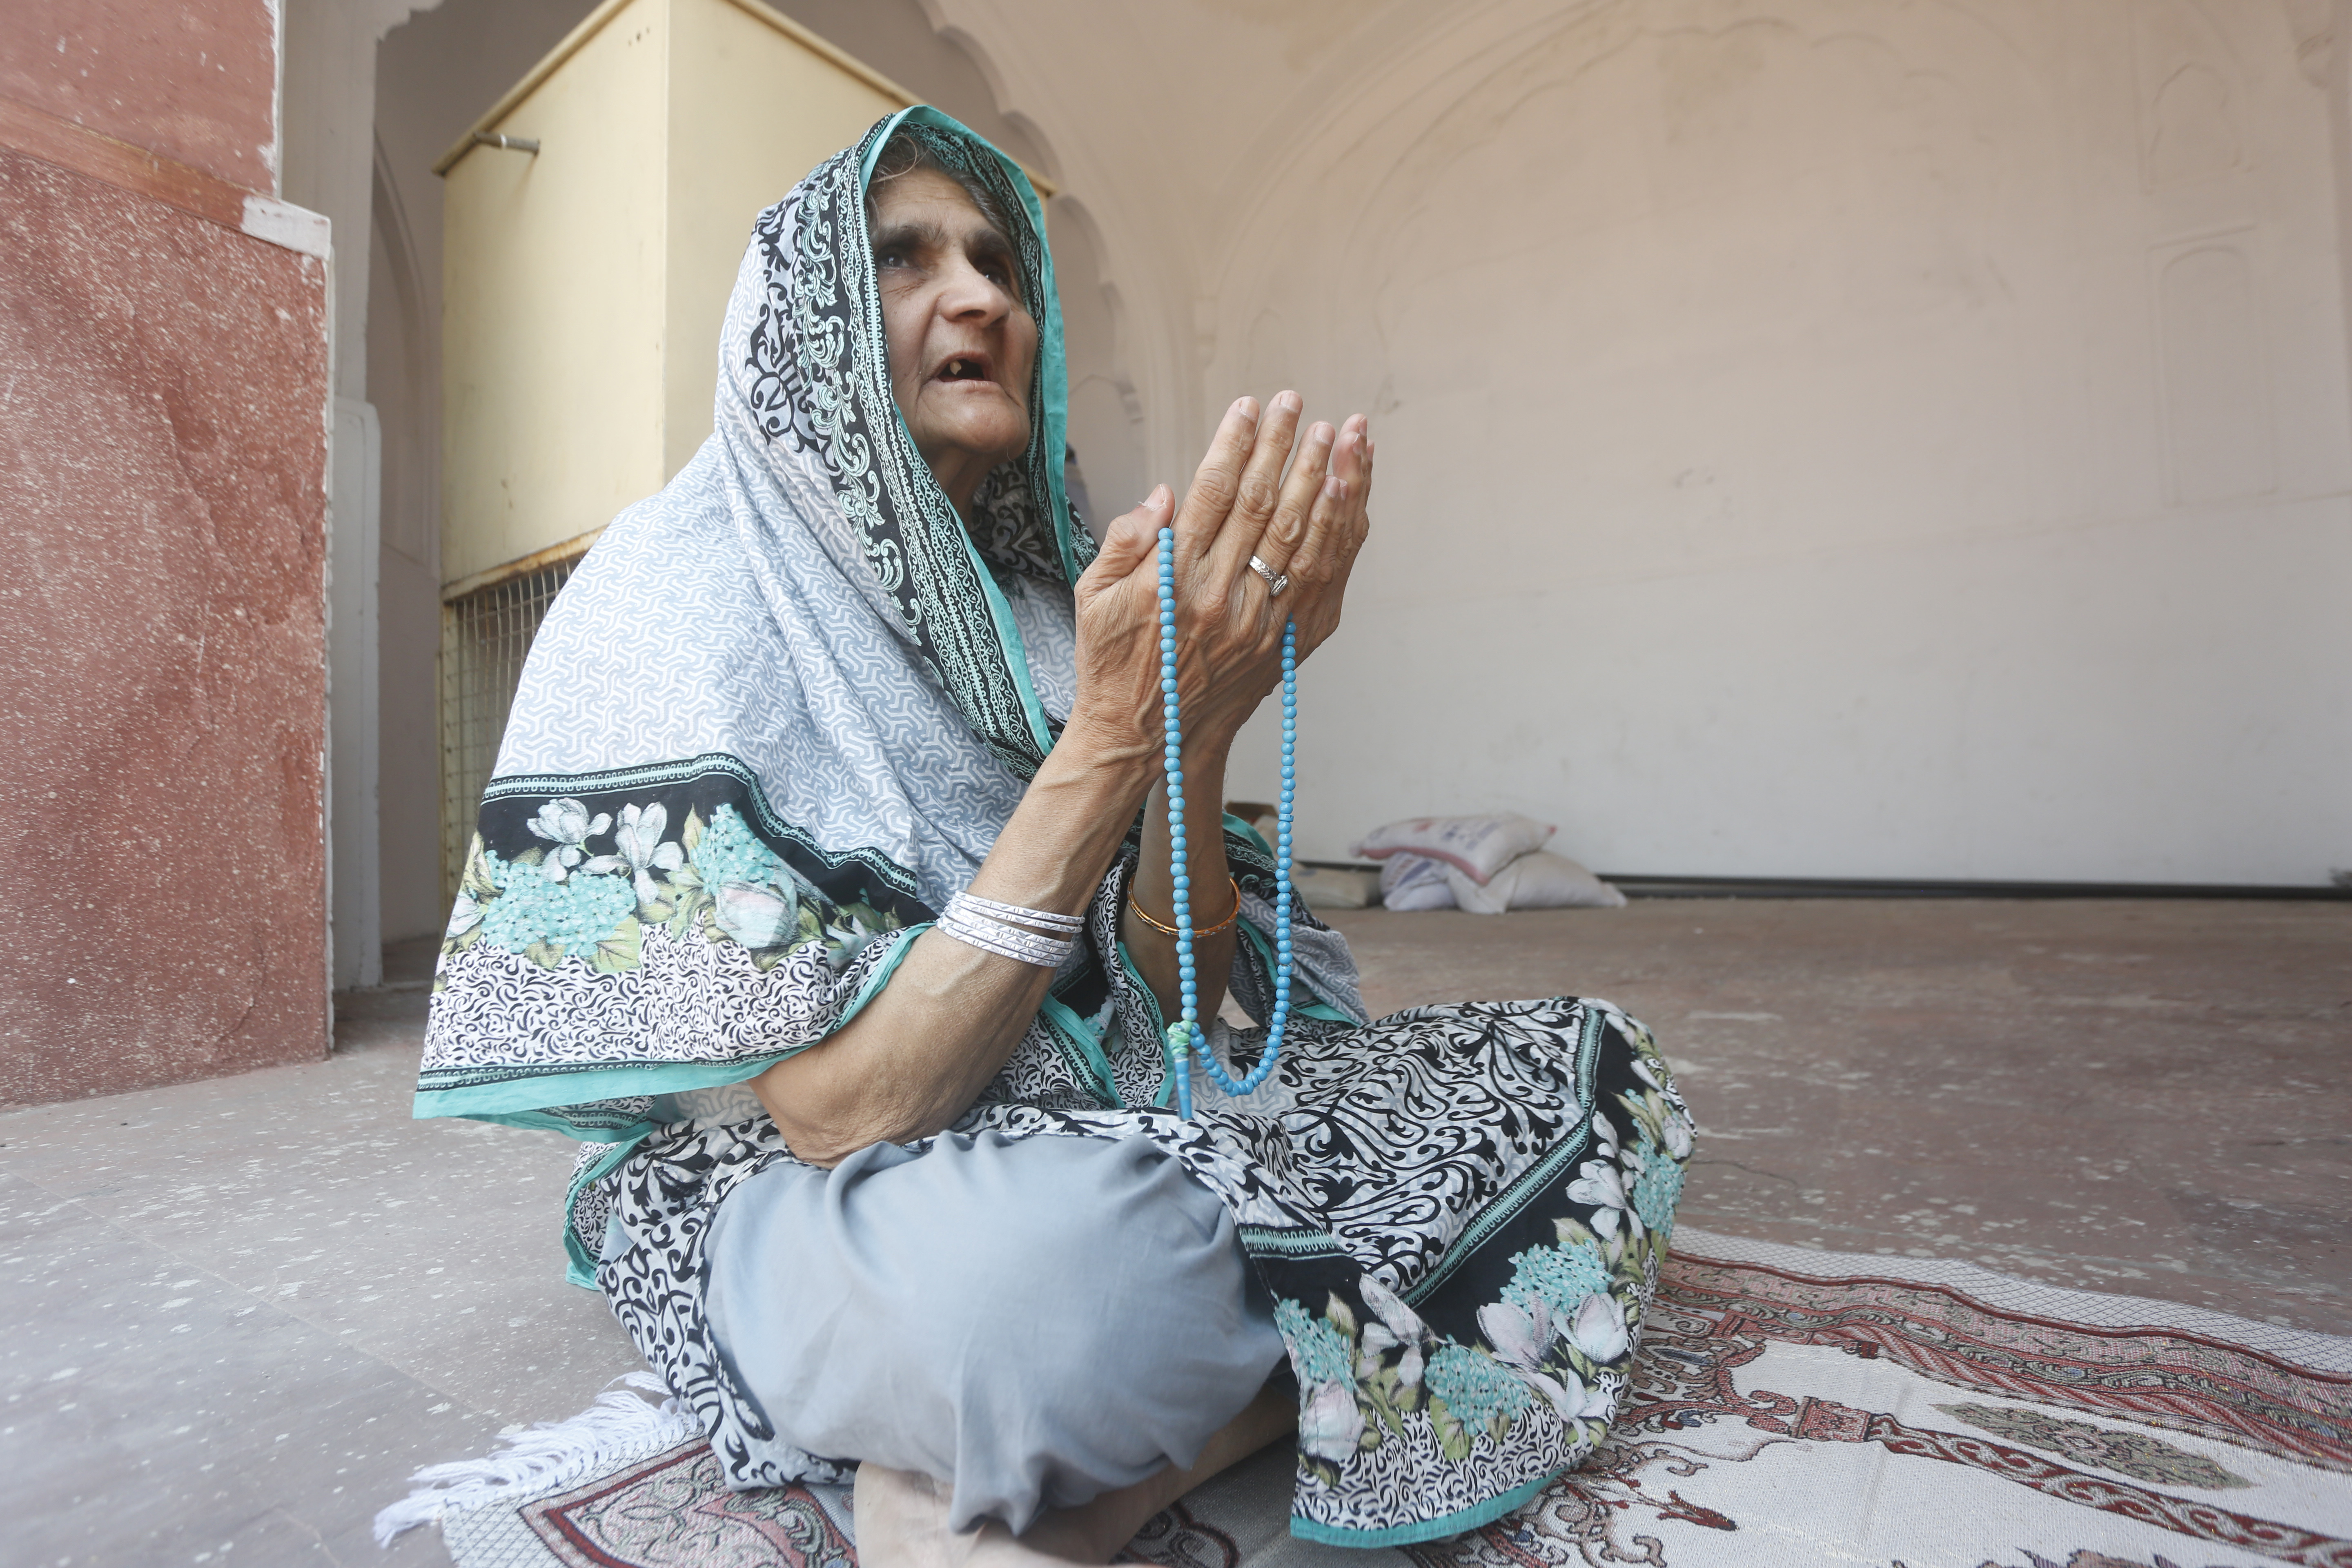 A woman attends Friday prayers at the Badshahi mosque during a government imposed nation wide lockdown to help avoid the spread of the coronavirus